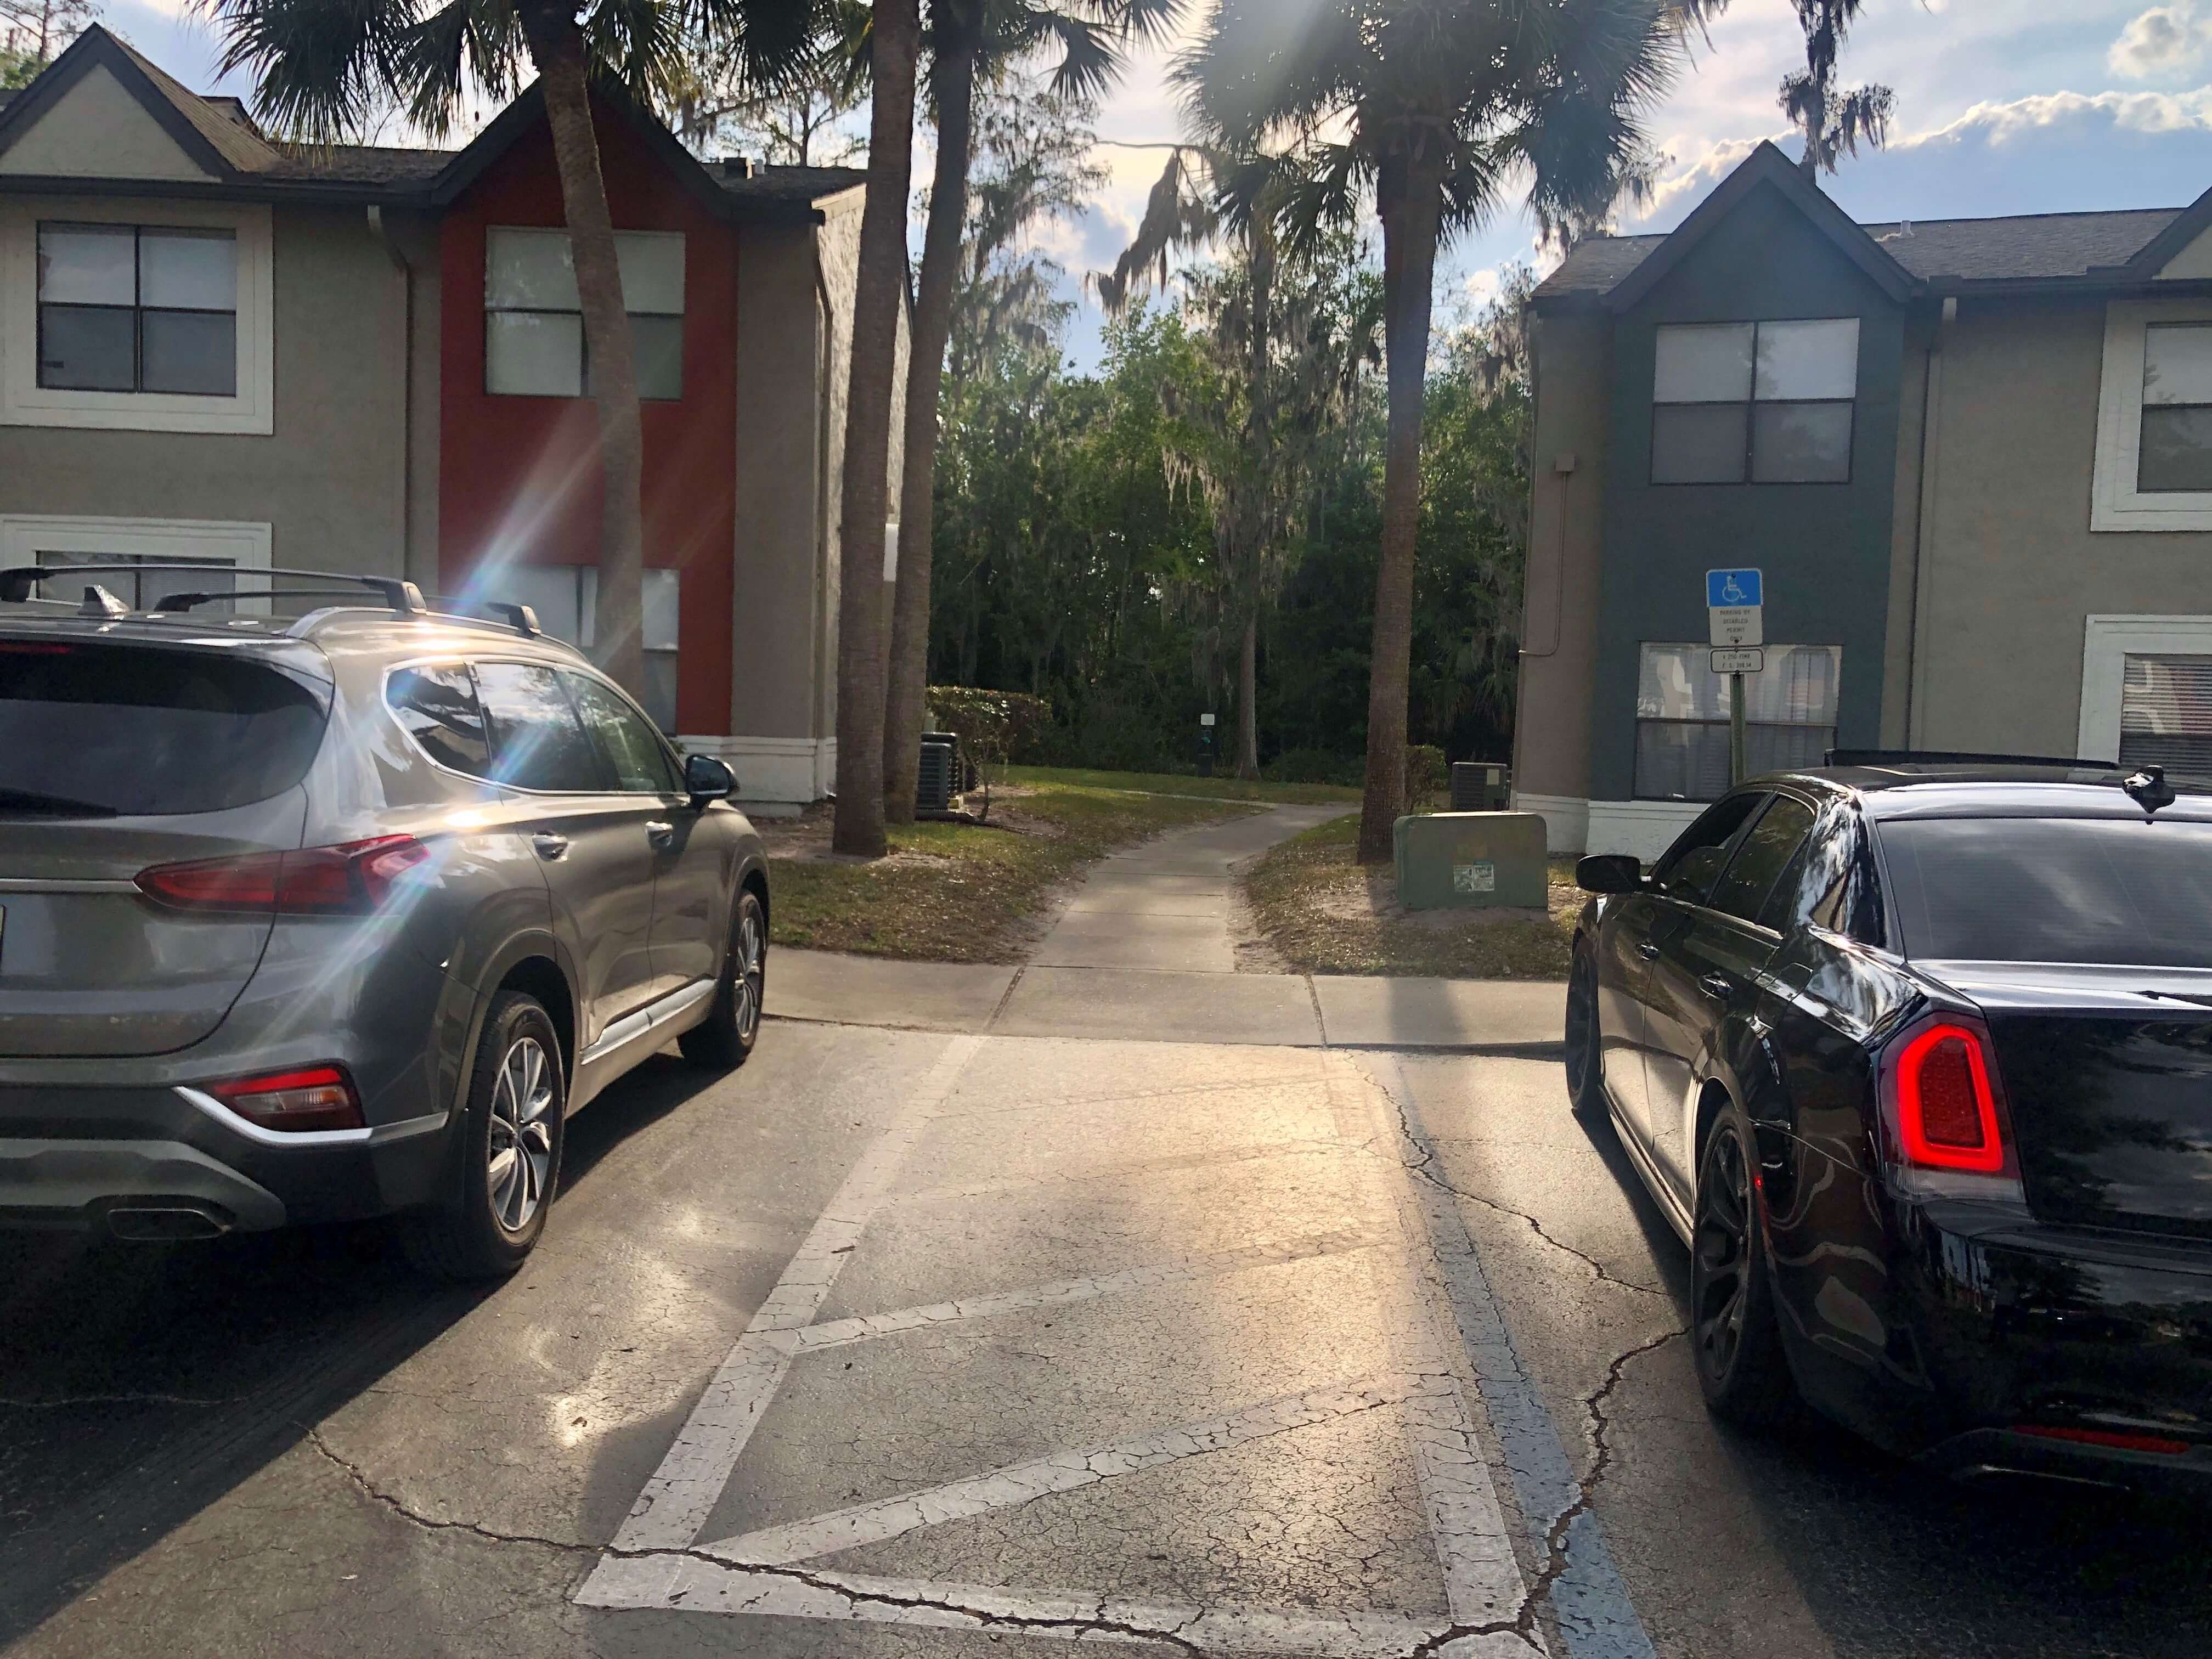 Handicap parking, with wheelchair accessible path leading to the apartments.